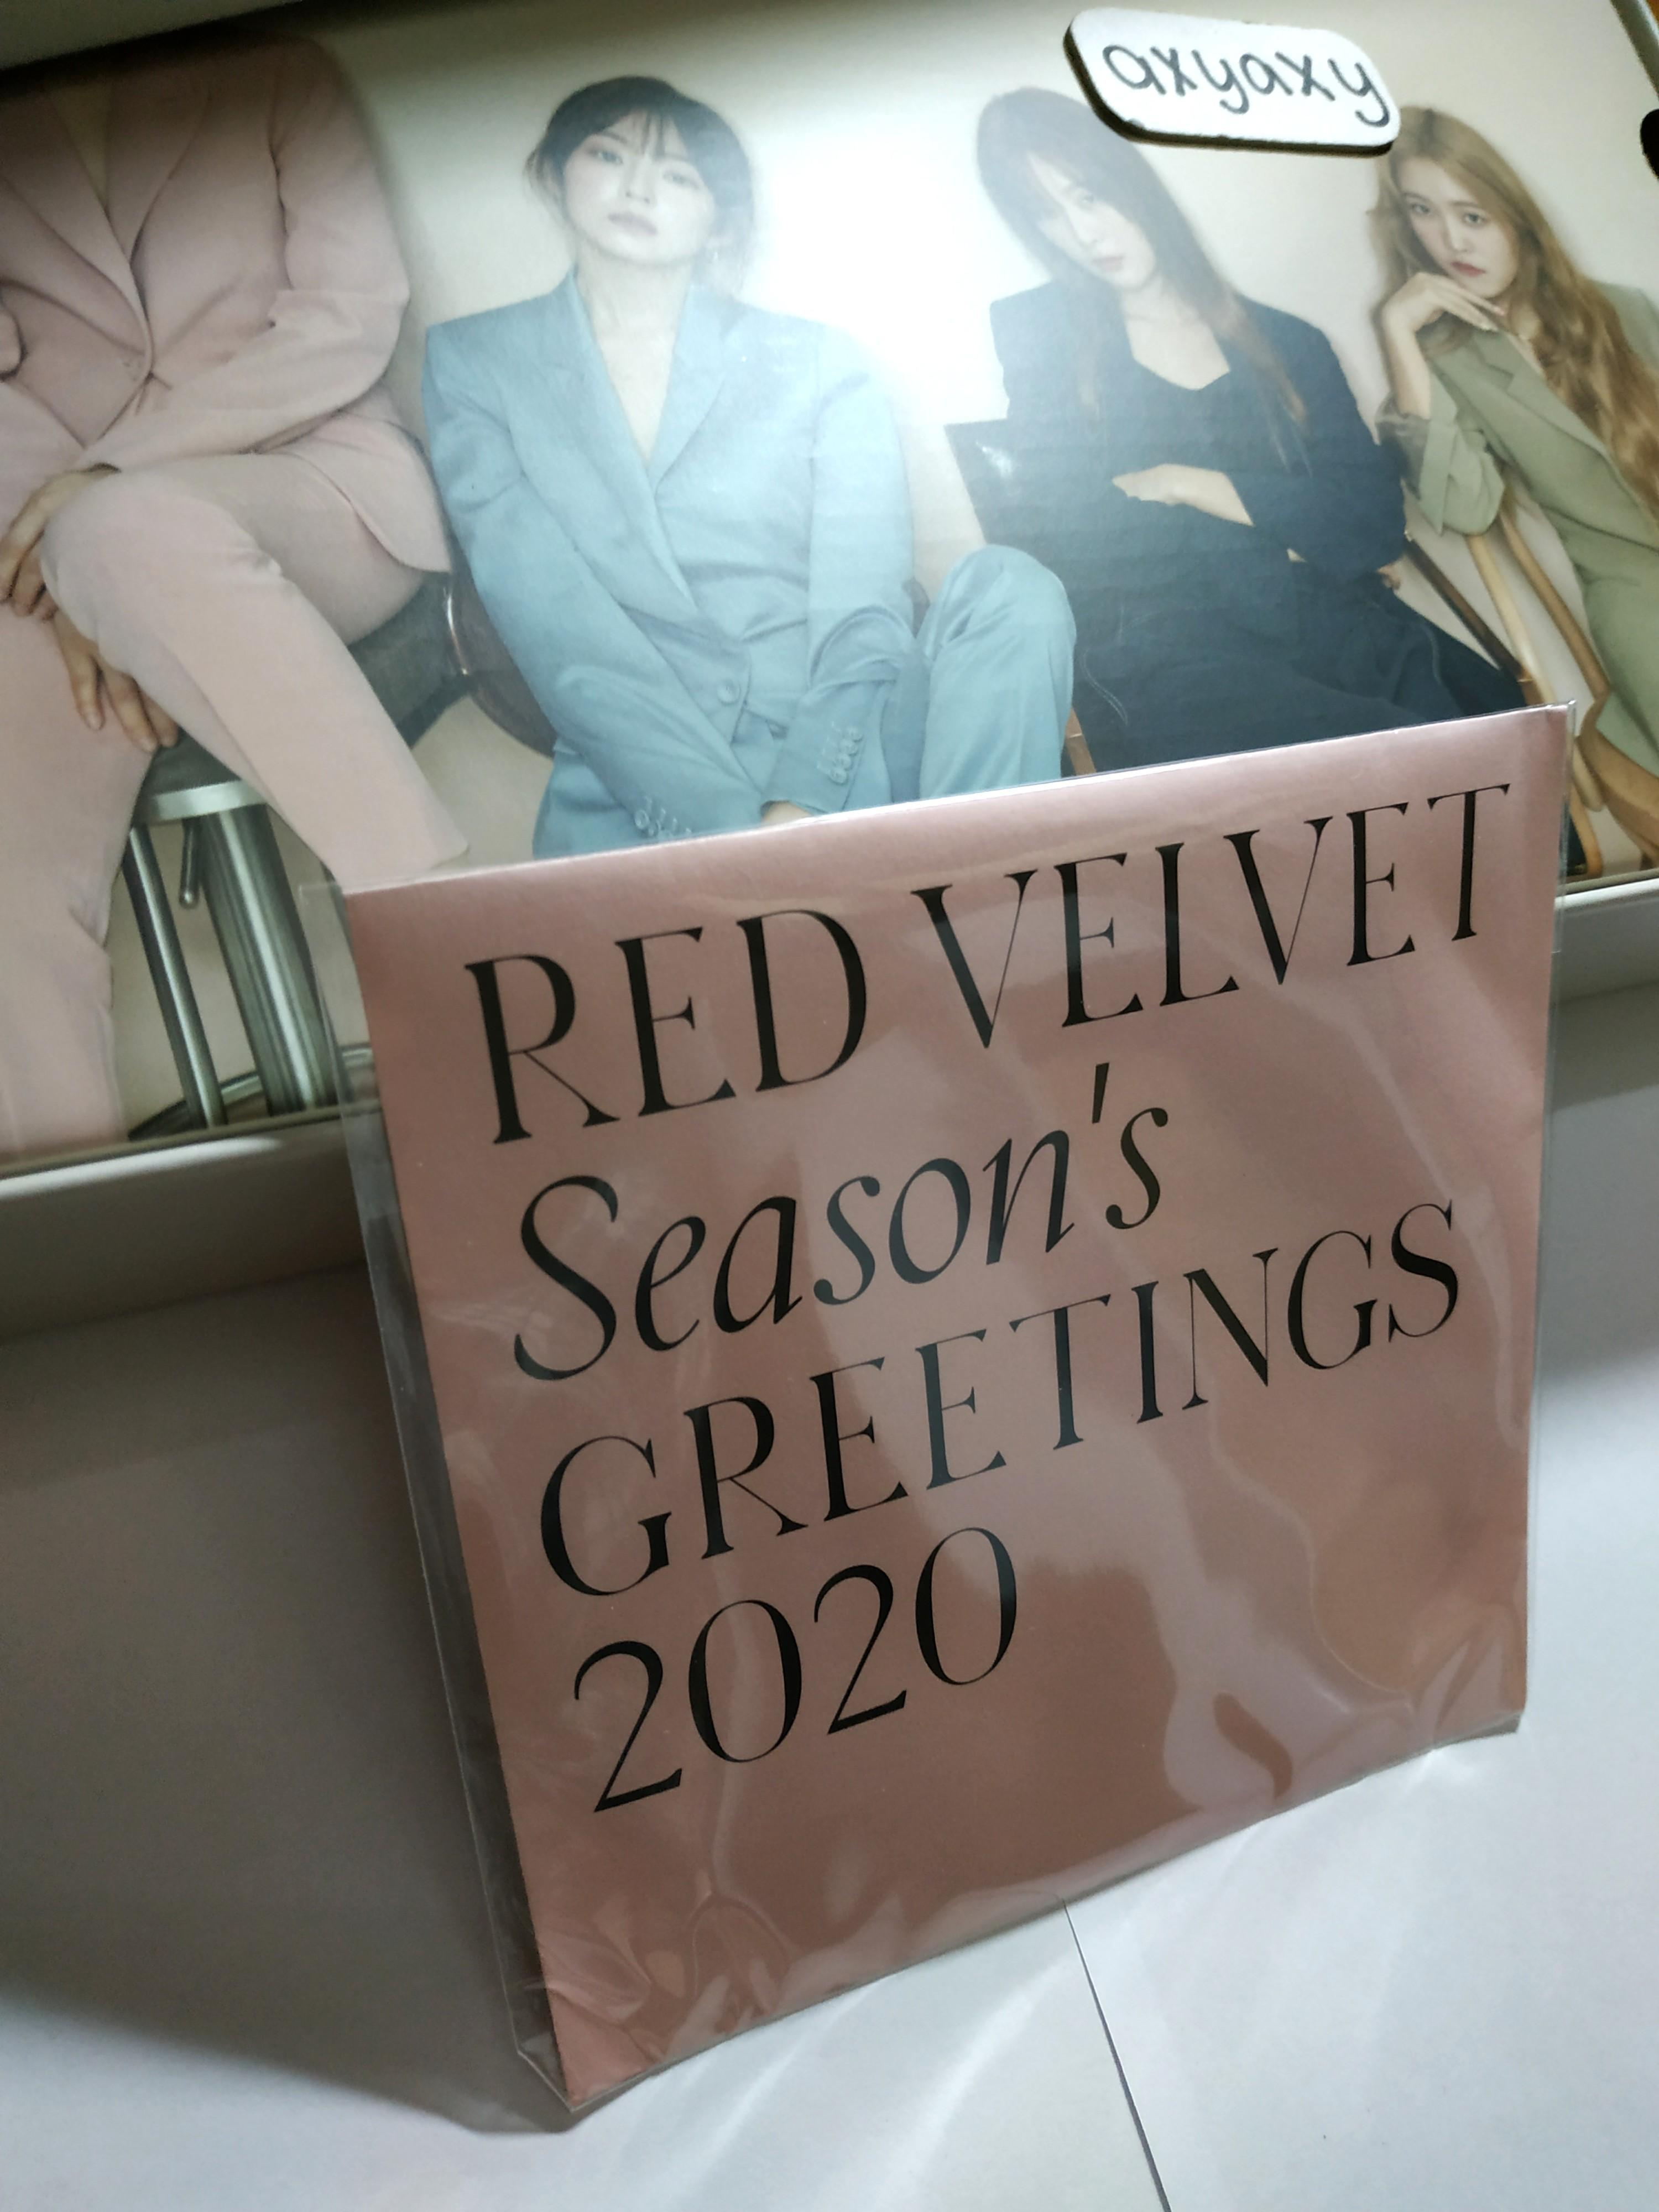 [WTS] RED VELVET 2020 SEASON'S GREETINGS: Outbox Package and DVD